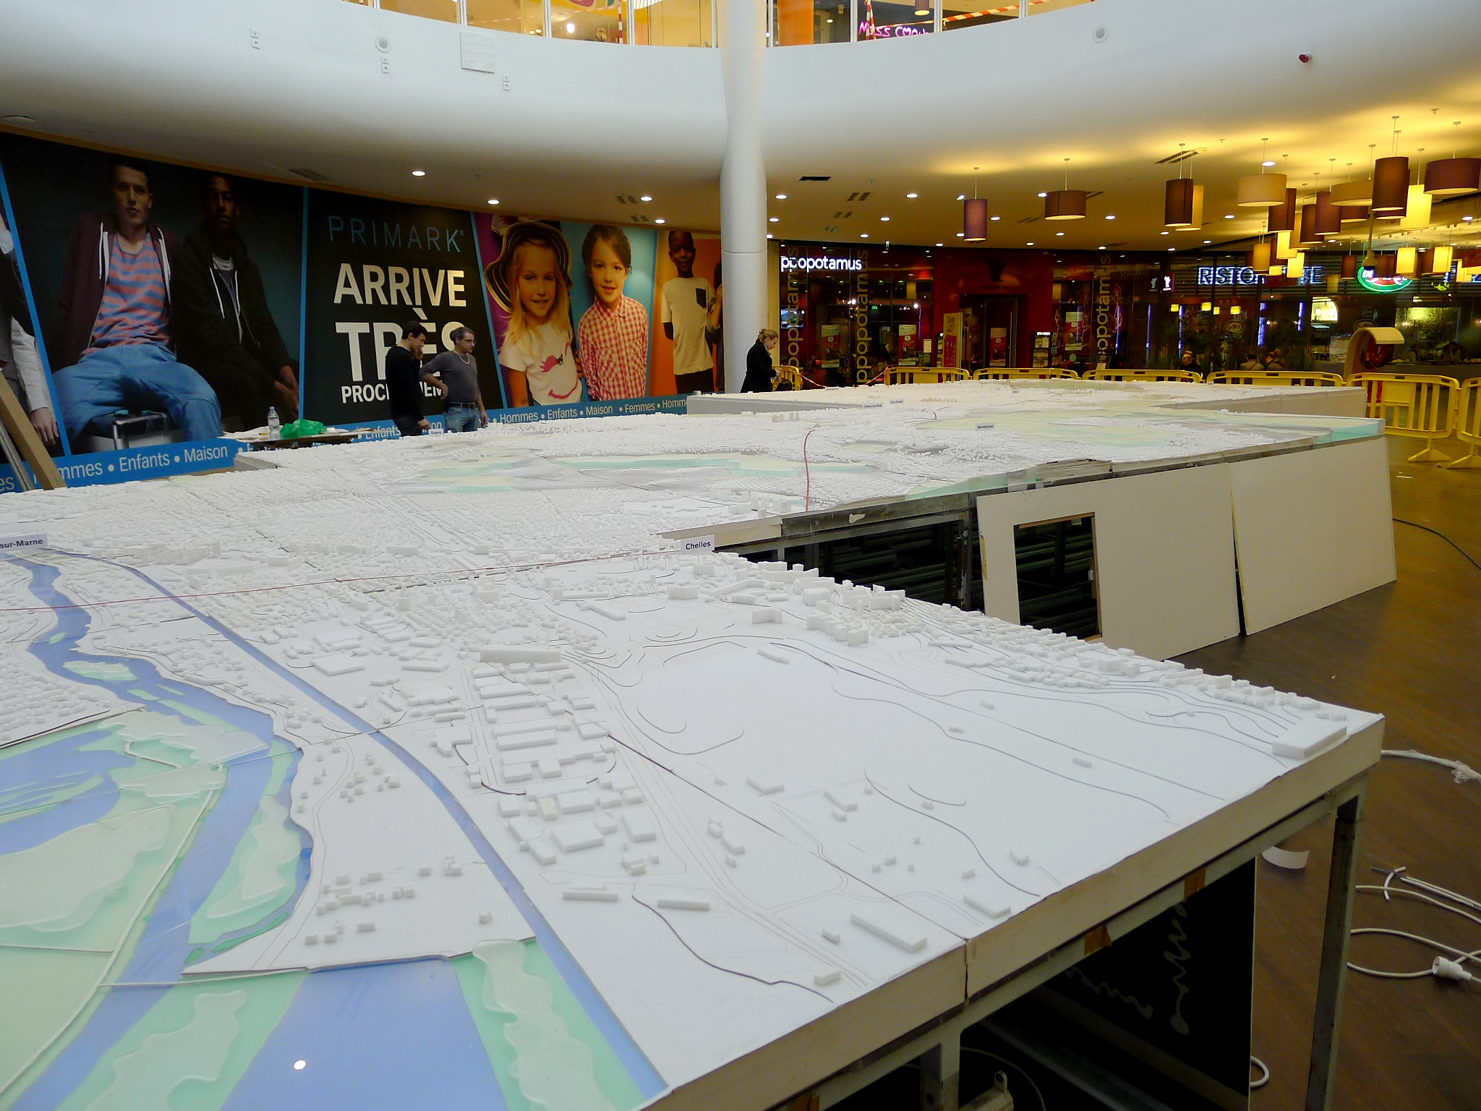 Exhibition of the dorsale est model at the shopping mall for Brocante aulnay sous bois